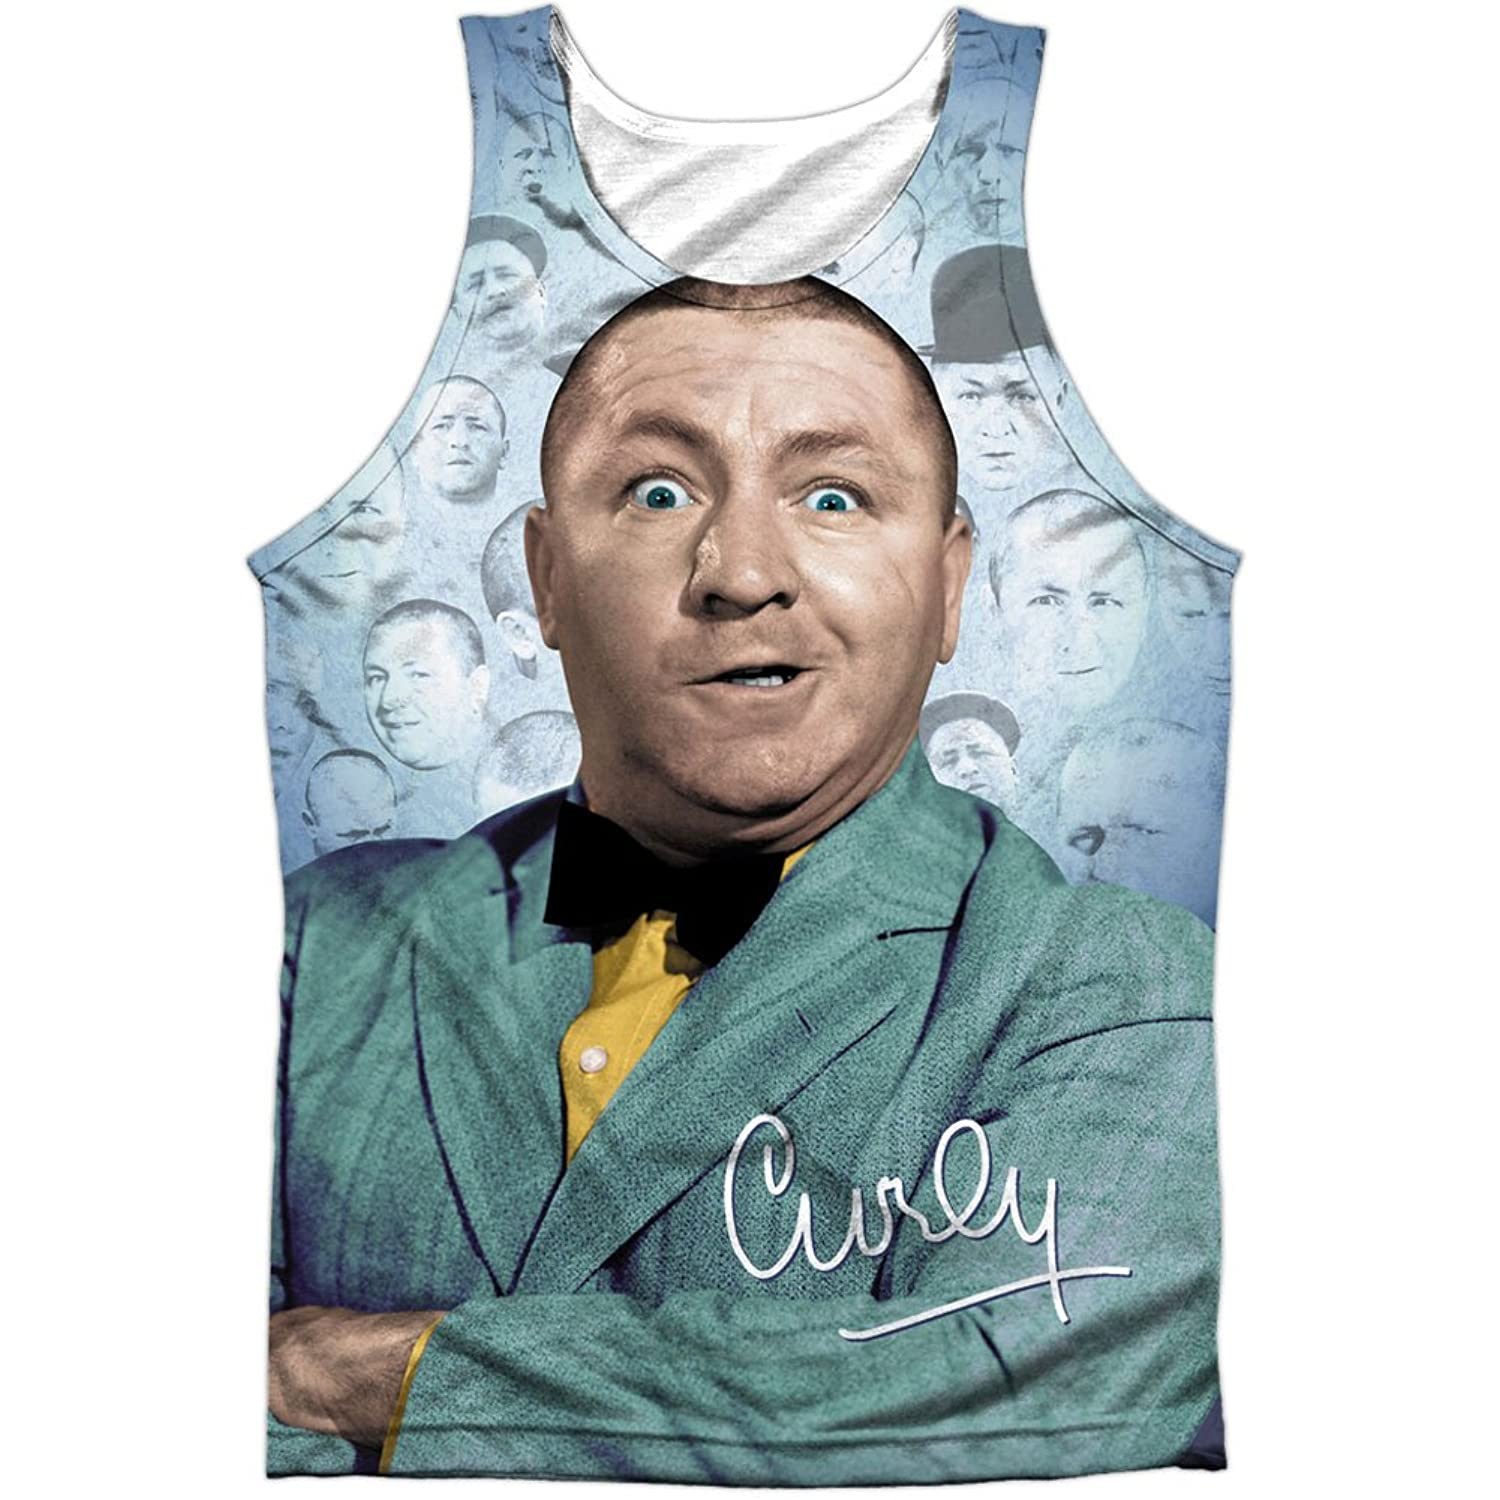 Three Stooges Slapstick Comedic Group Curly in Color Front Print Tank Top Shirt